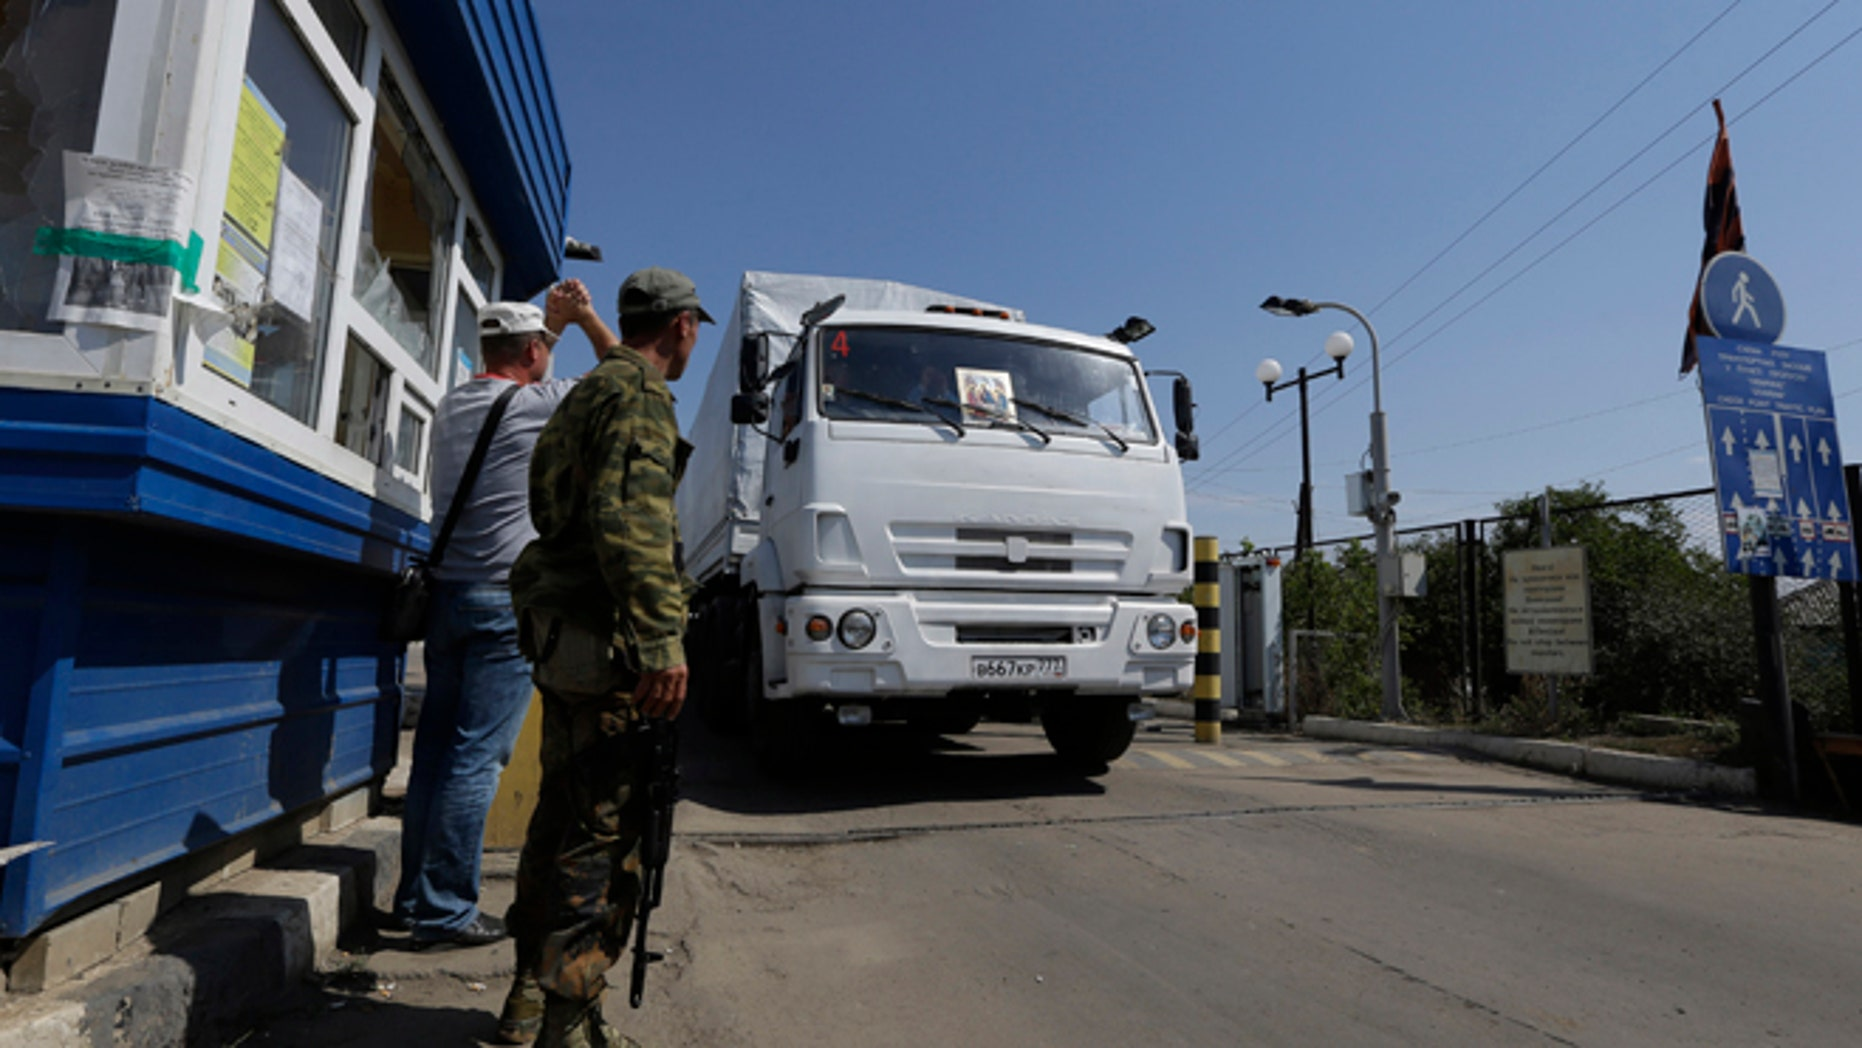 Aug. 22, 2014: Ukrainian border guards look at the first aid truck as it passes the border post at Izvaryne, eastern Ukraine. (AP/Sergei Grits)